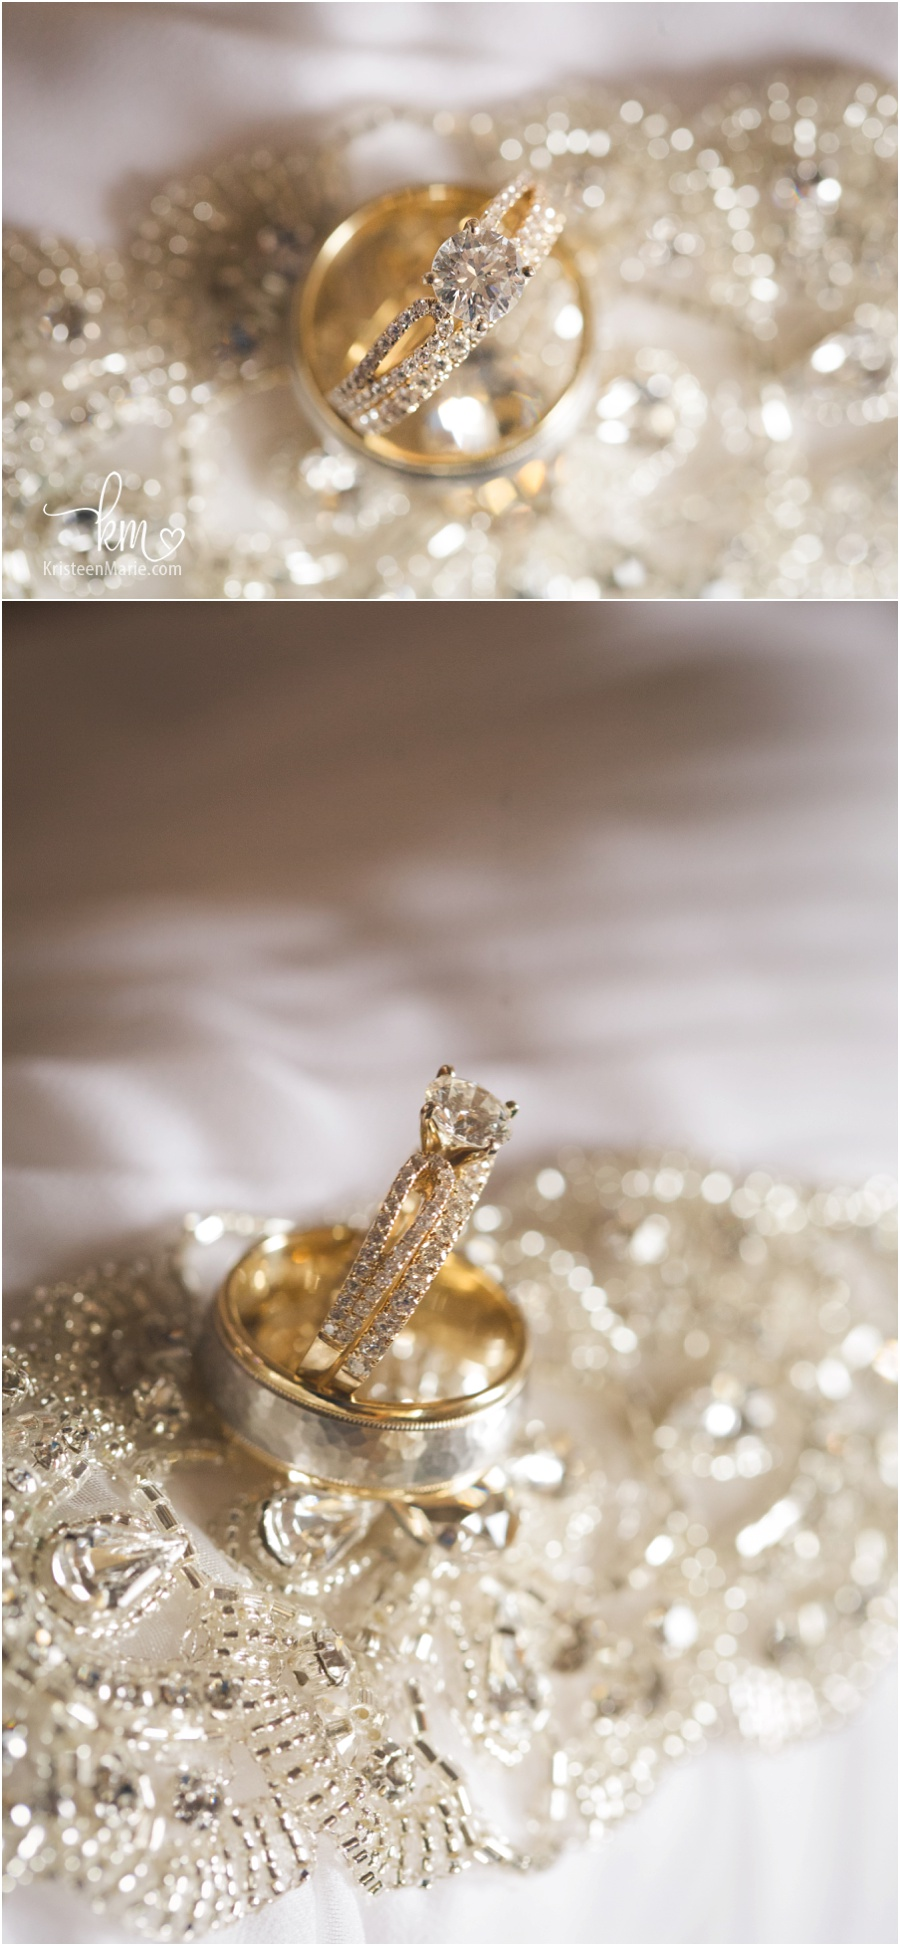 stunning wedding ring picture